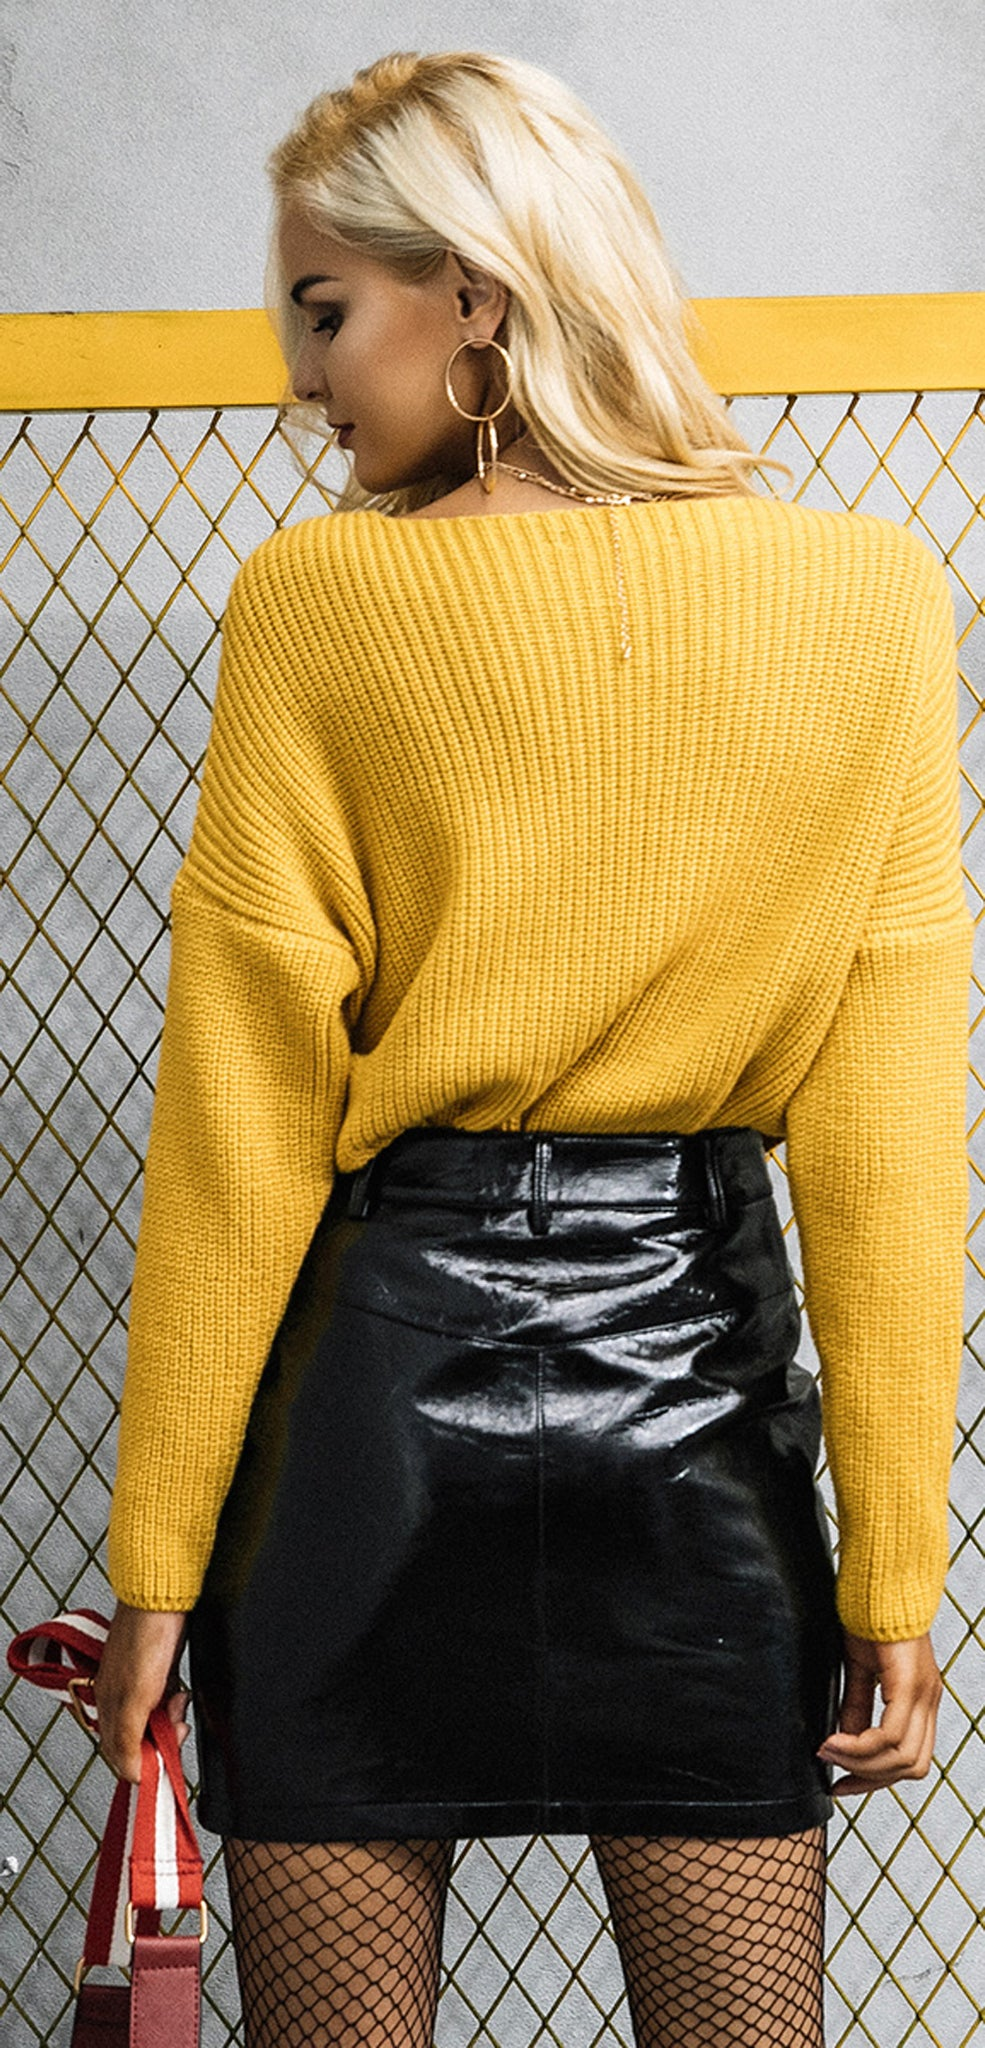 Rory Oversized Wrap Knitted Sweater Top Glamanti Beauty